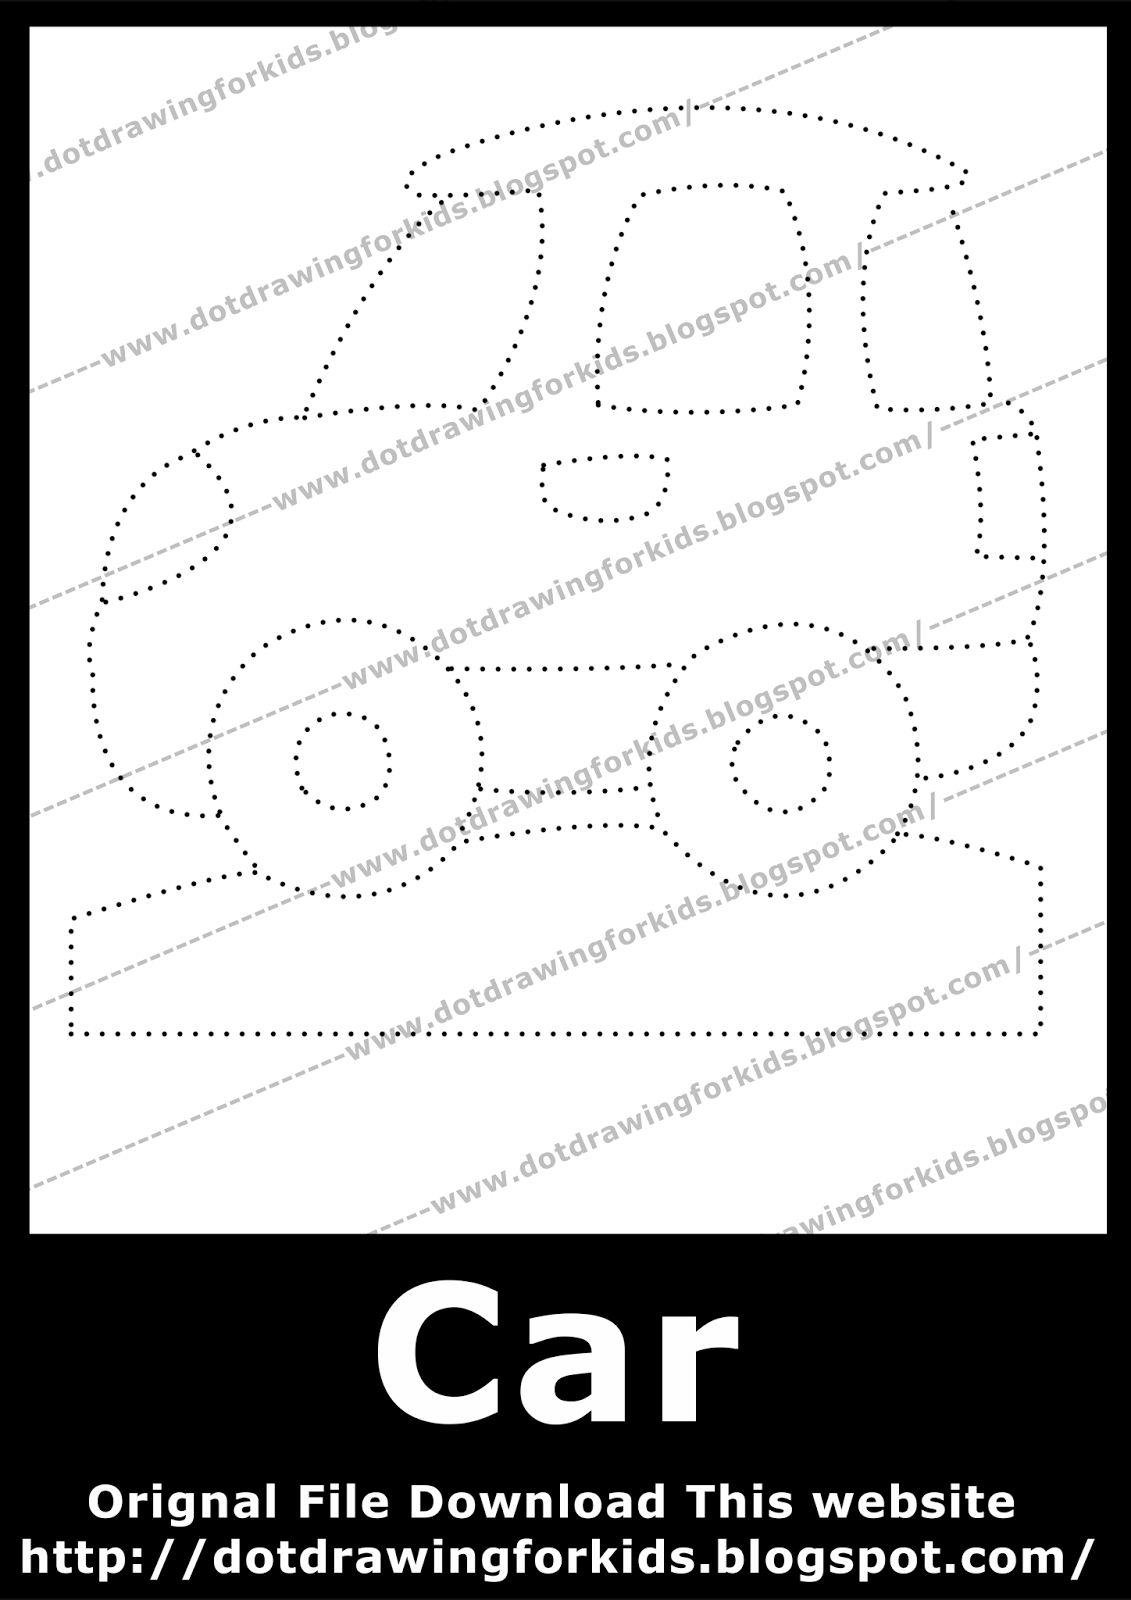 hight resolution of car dot drawing for kids dot to dot drawings free dotted drawing images